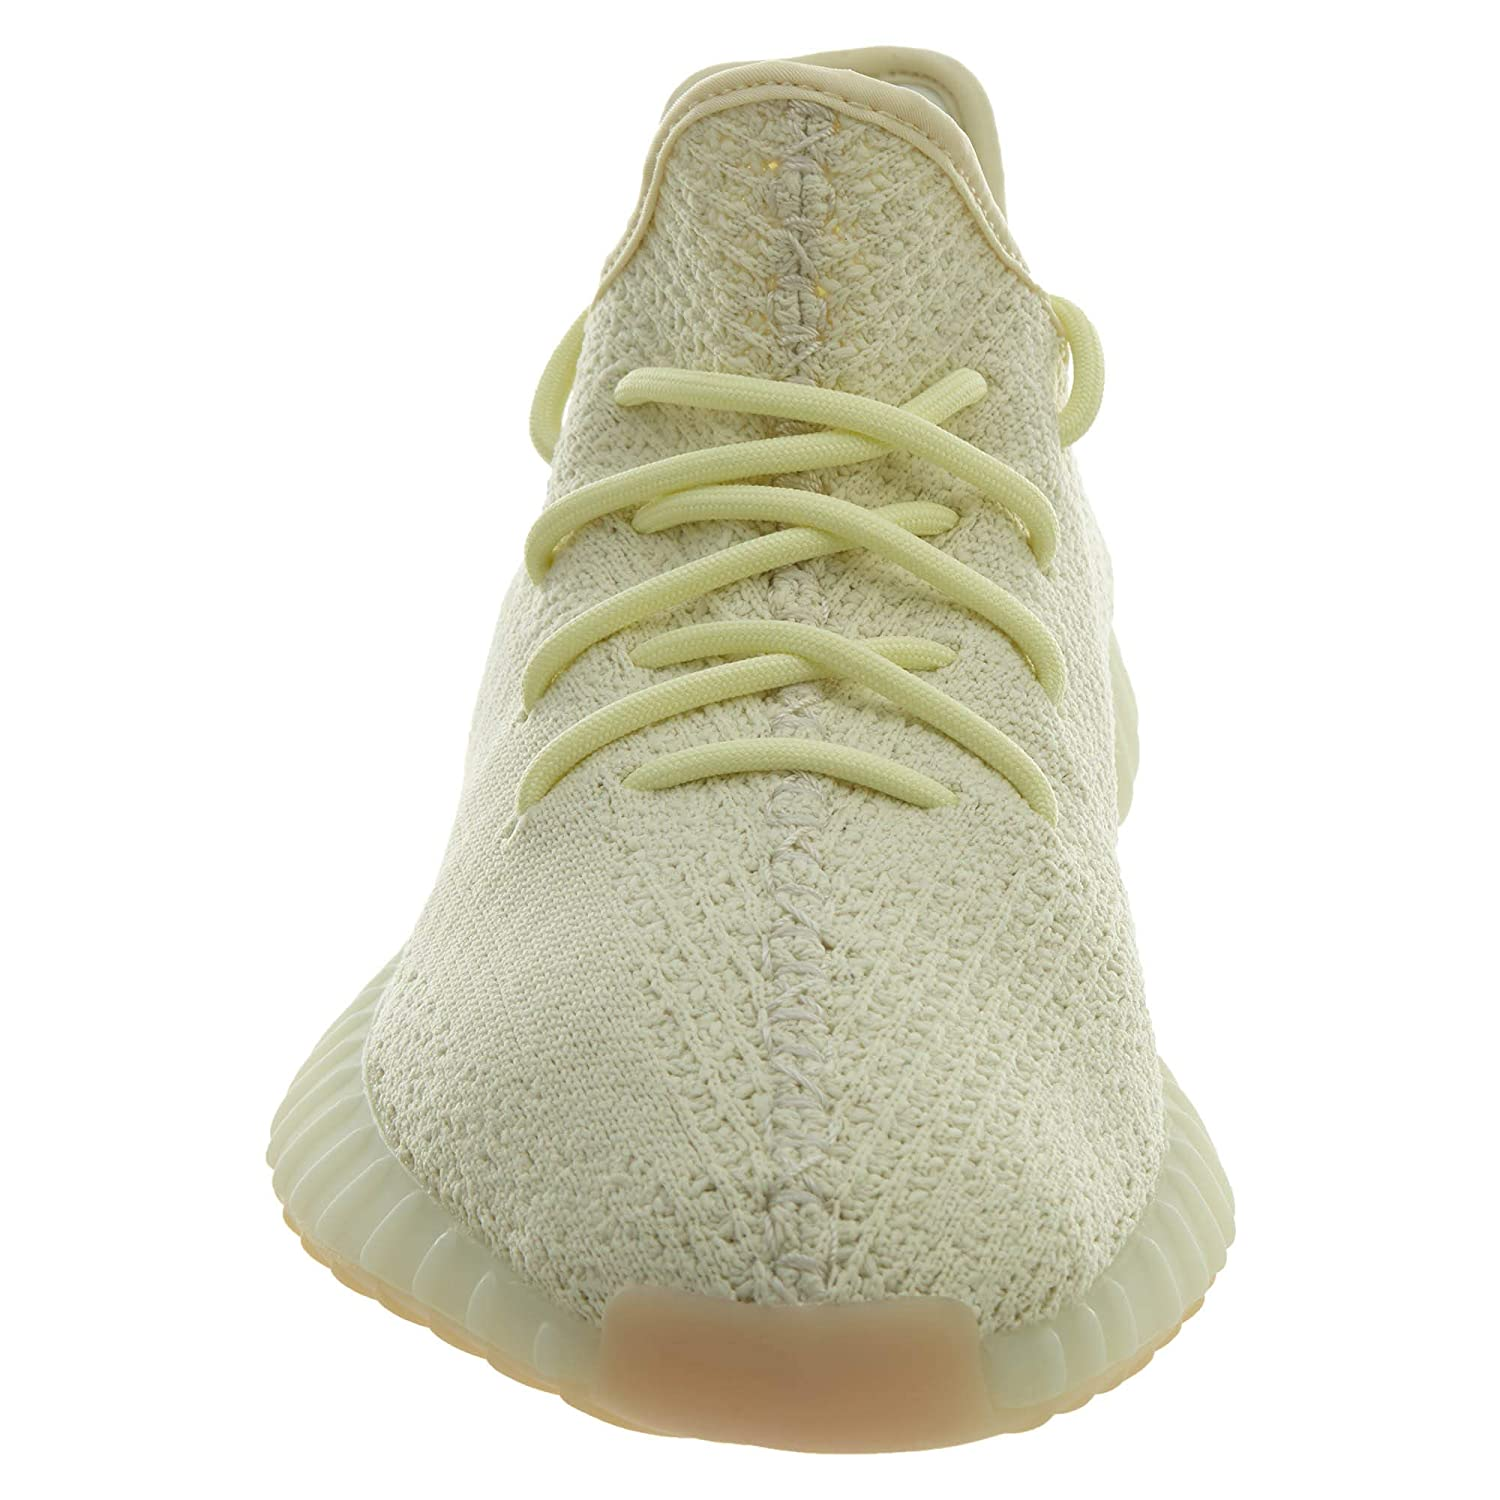 official photos 2bfd5 d1287 Amazon.com   adidas Yeezy Boost 350 V2 Inchbutter Mens   Fashion Sneakers